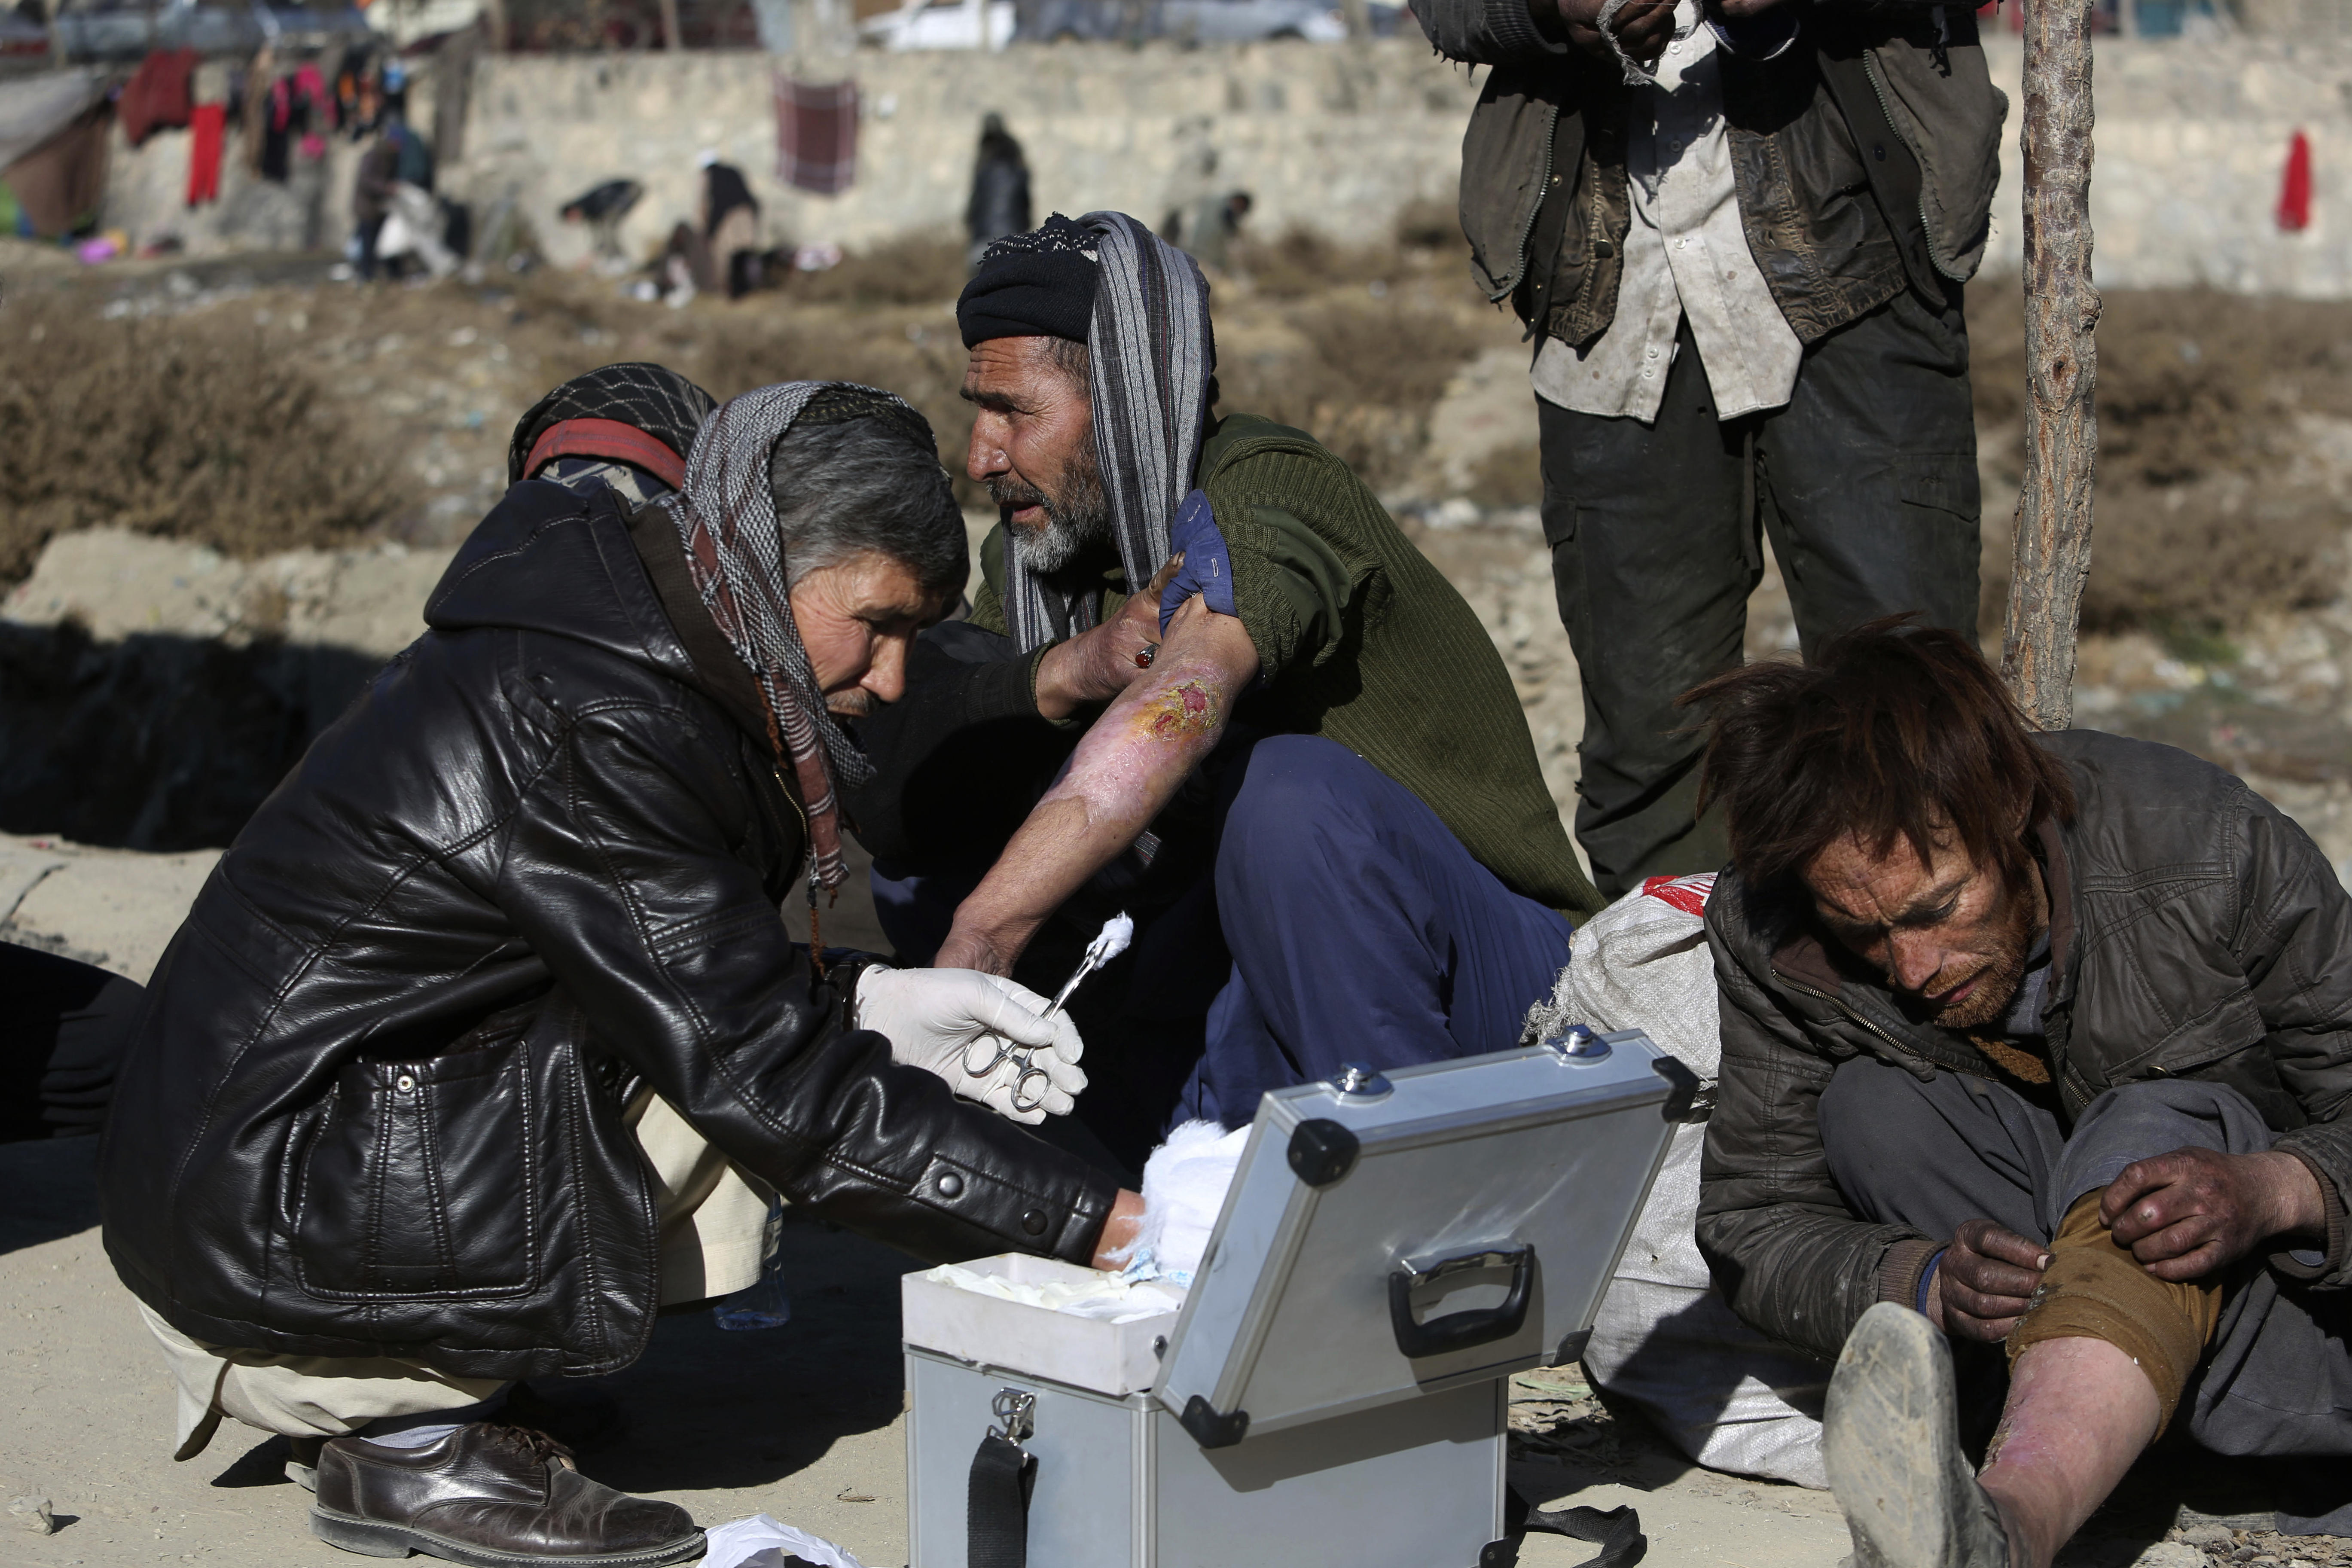 Afghanistan drug addicts volunteer in country with growing